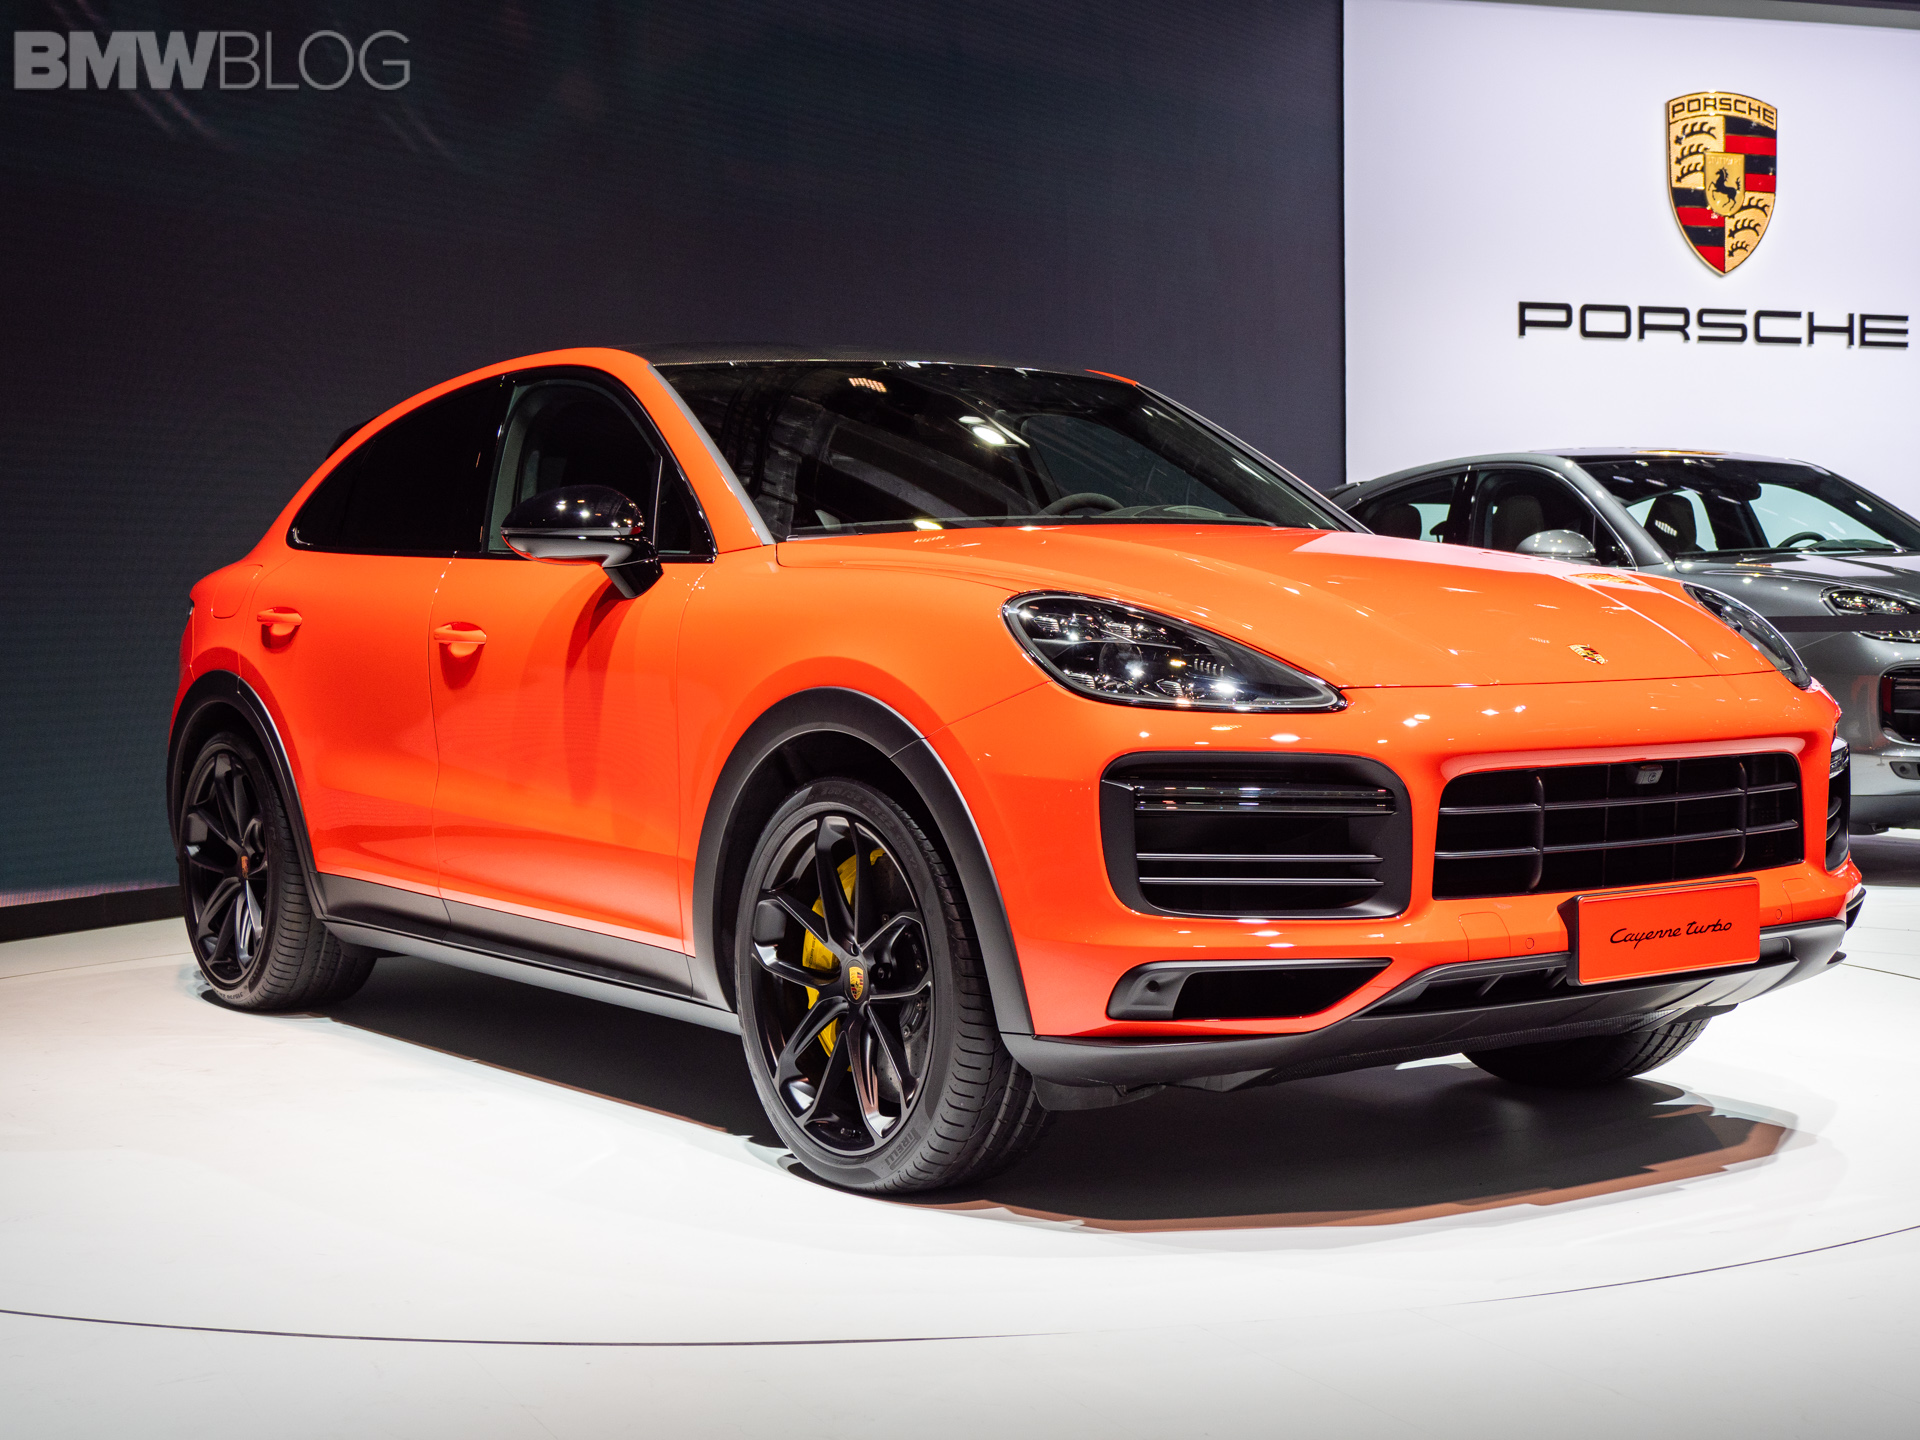 2019 Shanghai Motor Show The New Porsche Cayenne Coupe Makes Its Debut